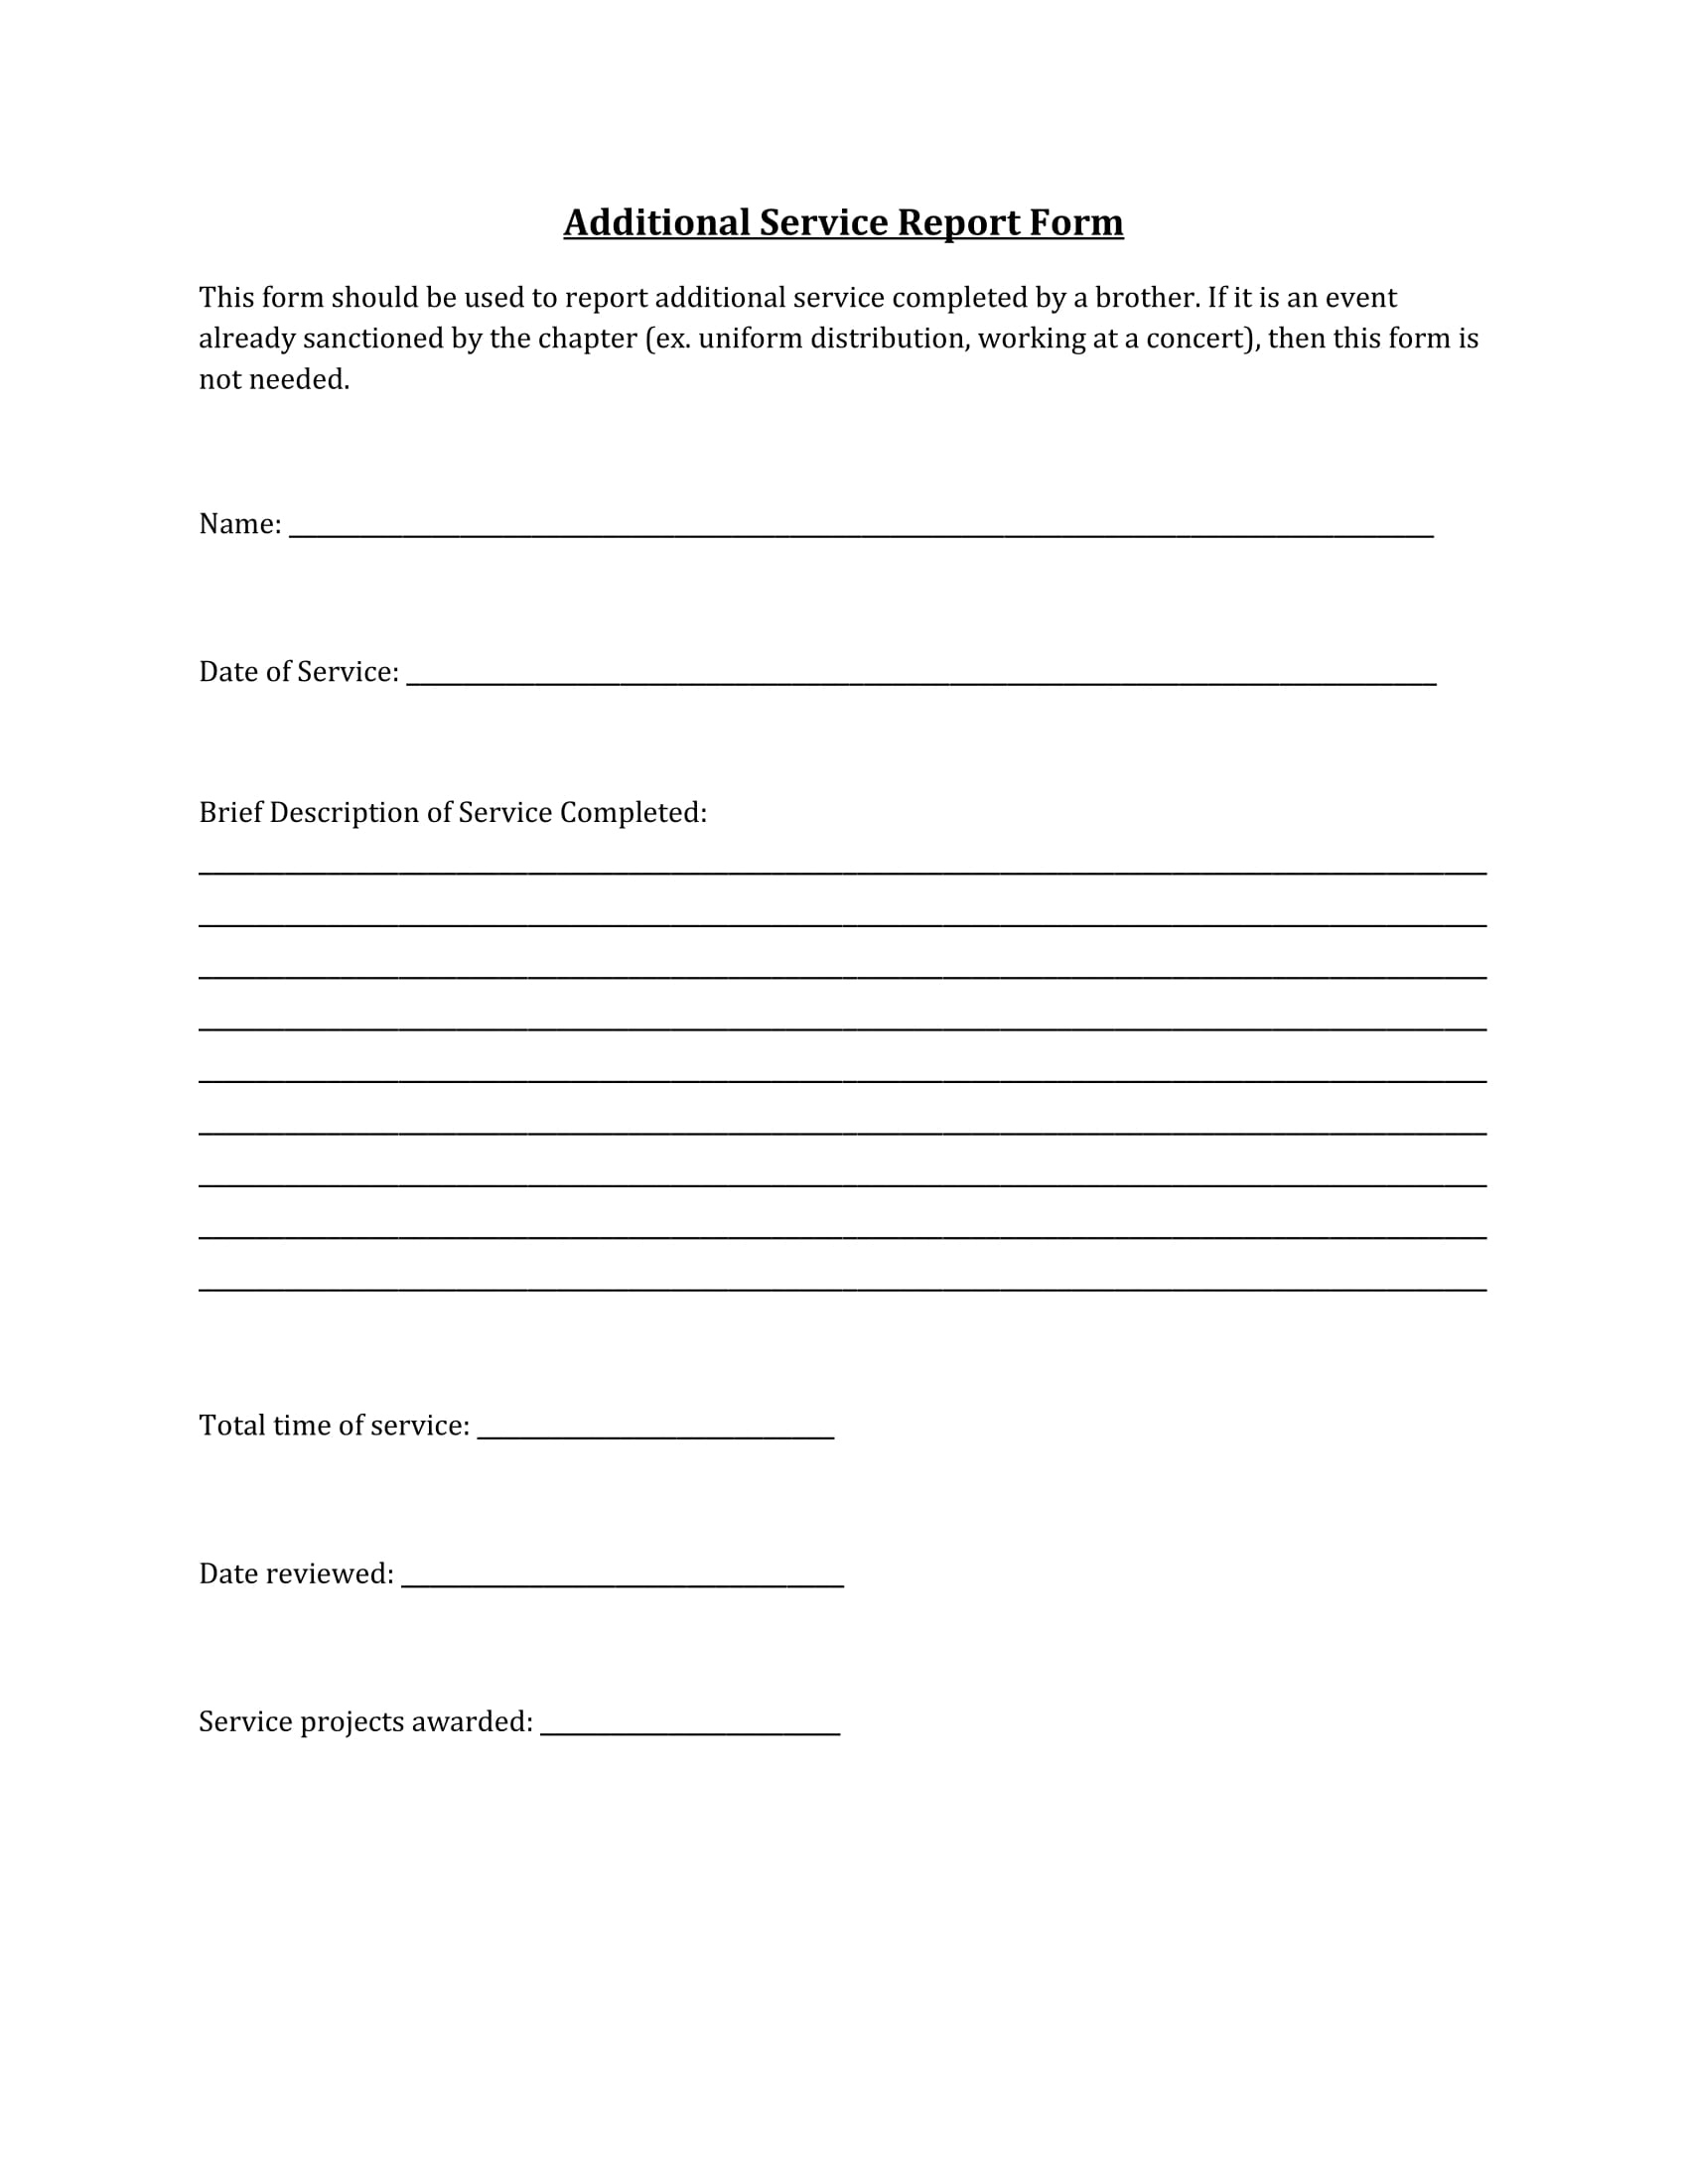 basic service report form 1